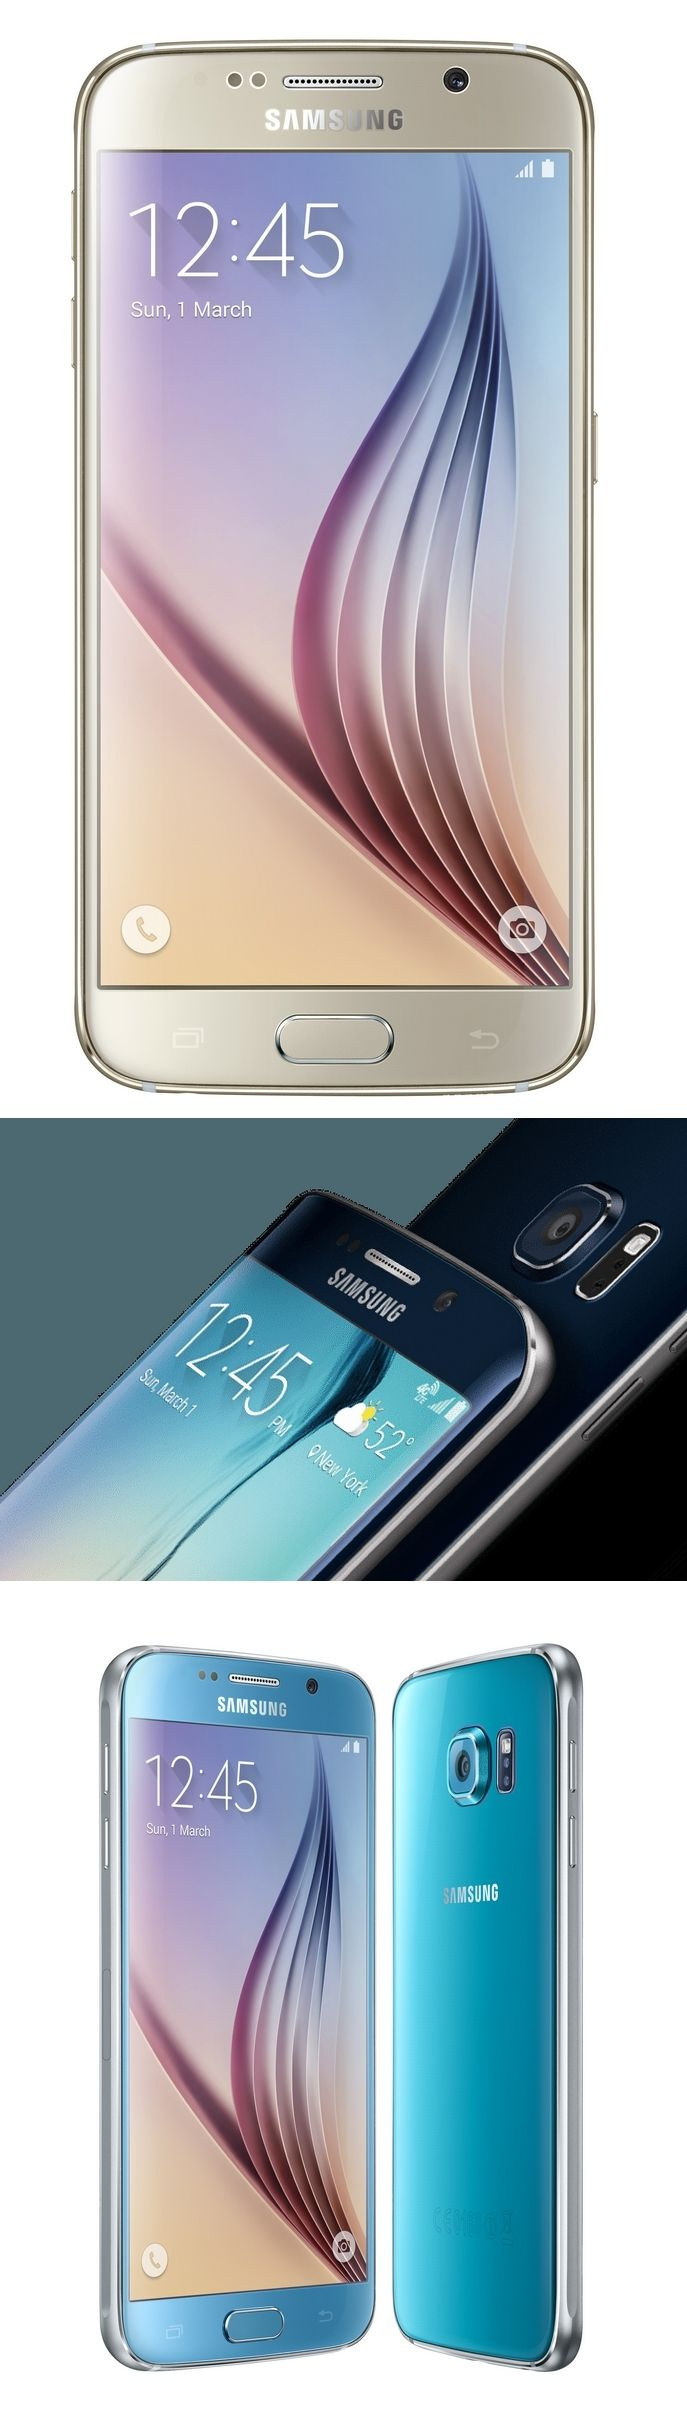 Samsung sets a new, all-metallic tone with the Galaxy S6 and curvy Galaxy S6 Edge, which features a wraparound display. The F1.9 lenses on the 16MP rear cameras on both units promise quality images in low light and the 5.1-inch, 2560-by-1440 pixel AMOLED displays have a resolution of 577 pixels per inch (ppi); much sharper than the 5.5-inch screen on Apple's iPhone 6 Plus (401 ppi) or 4.7-inch iPhone 6 (326 ppi). #GalaxyS6 #GalaxyS6edge #TheNextBigThing @SamsungMobileUS